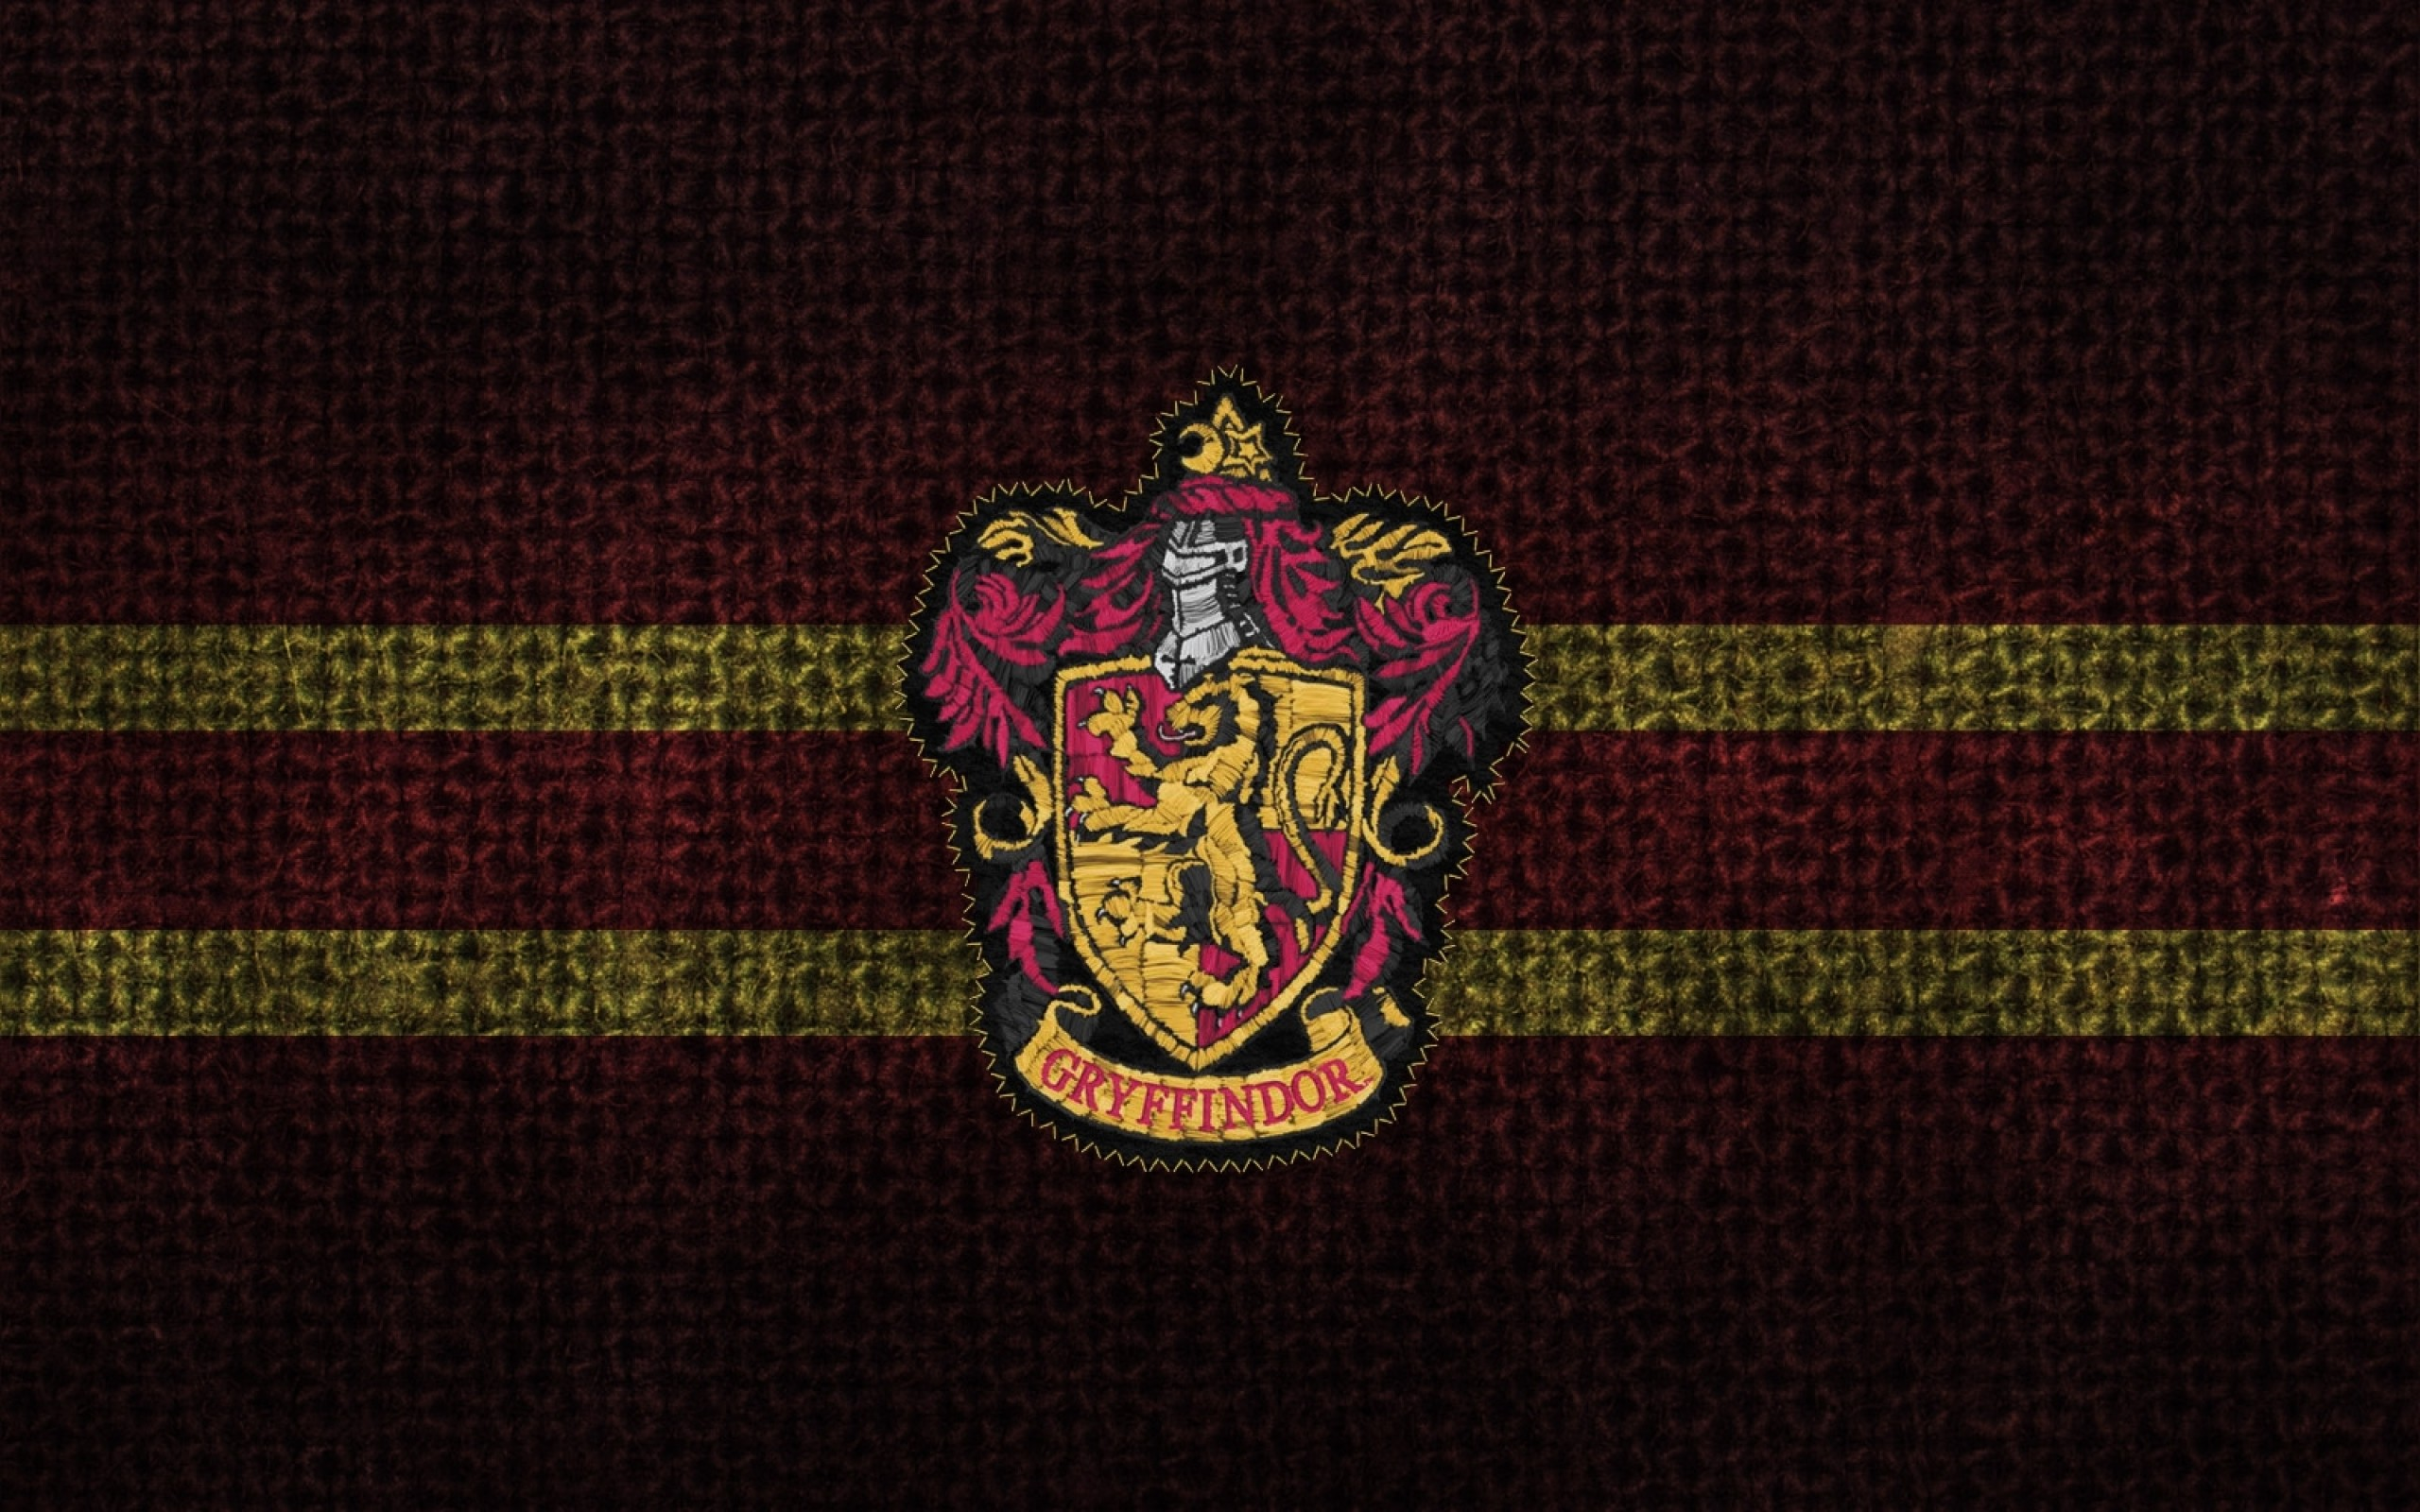 2560x1600 harry potter crest gryffindor hogwarts 1600x1089 wallpaper Art HD Wallpaper